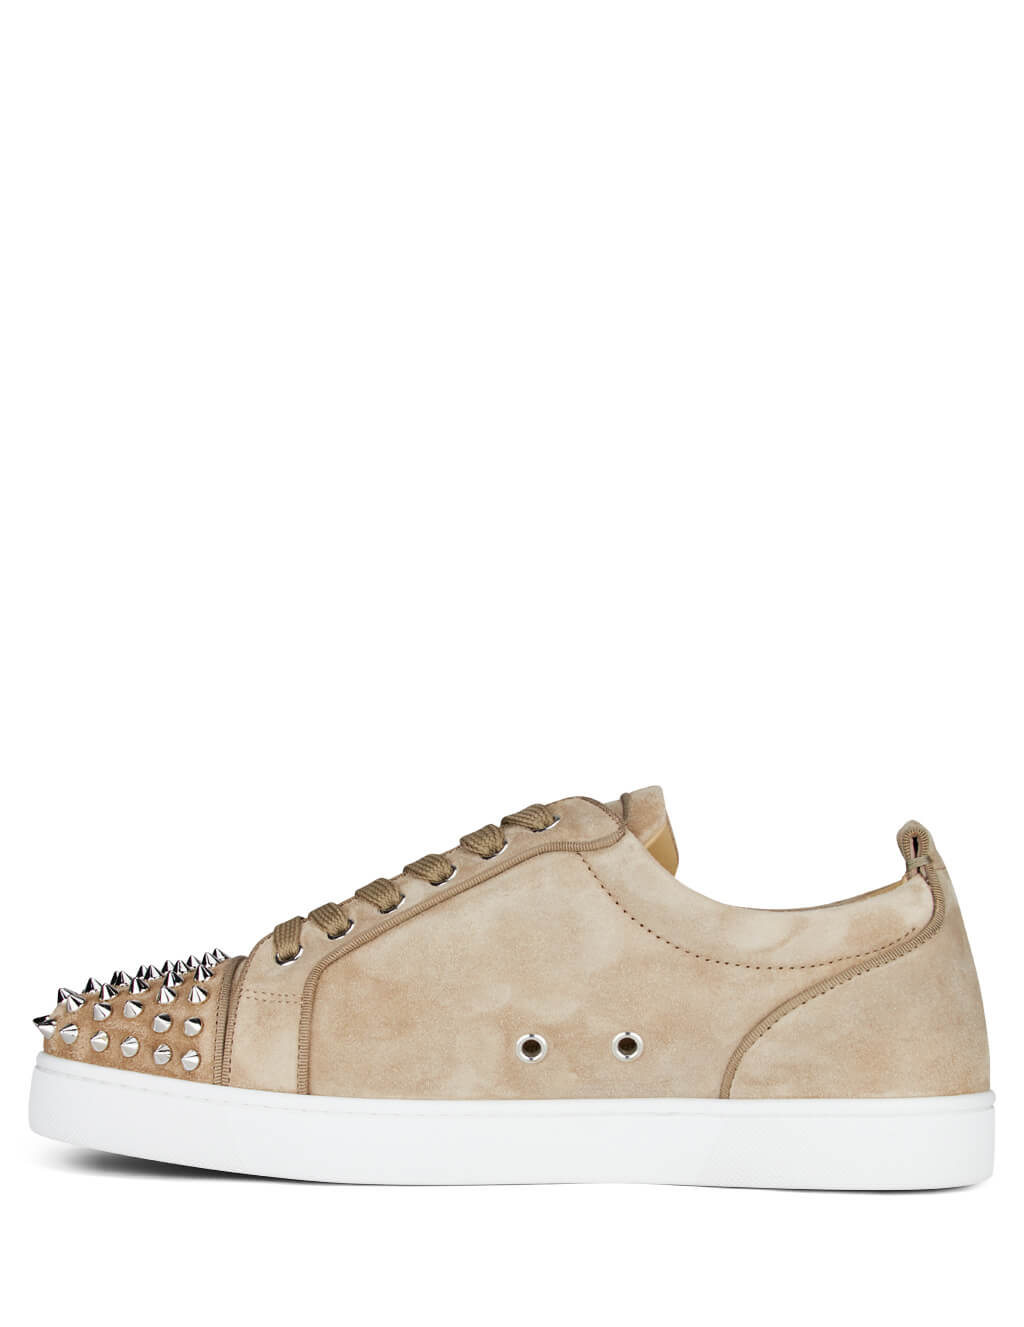 Christian Louboutin Men's Almond and White Louis Junior Spikes Orlato Suede Sneakers 3160934f283